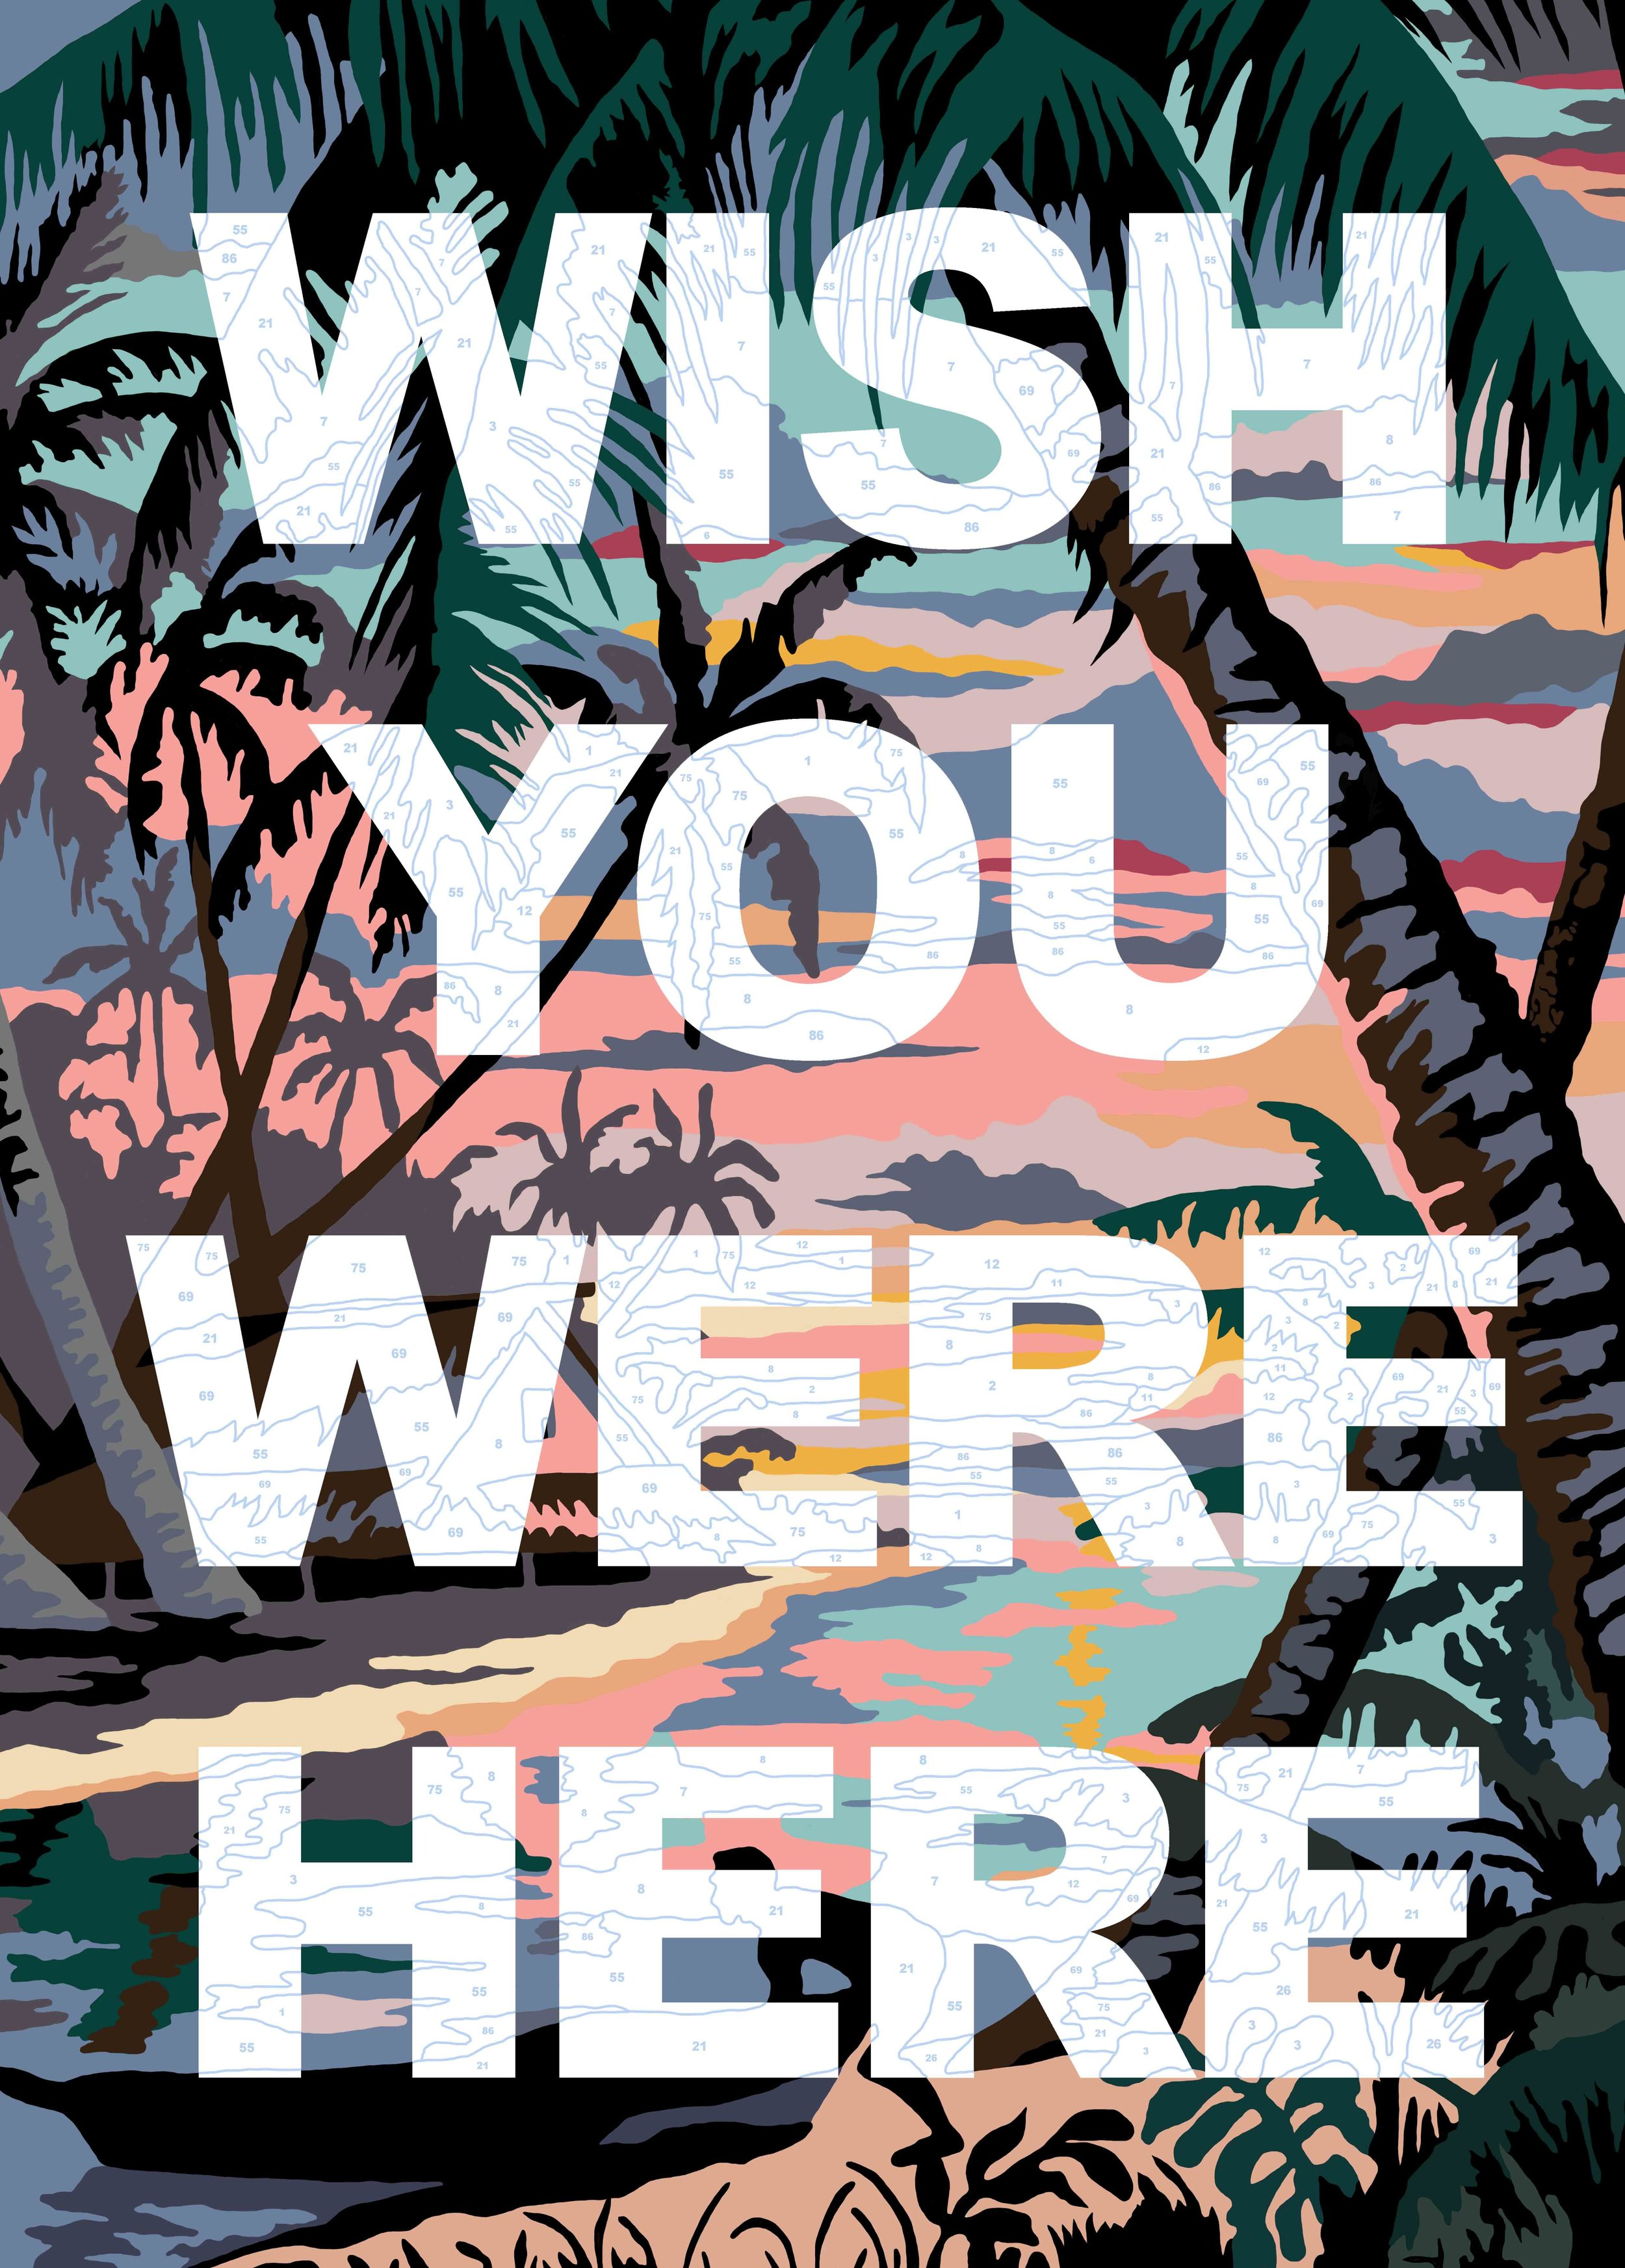 Wish You  Were Here   Enamel gloss paint on canvas  100 x 120 cm  2017  SOLD  The limited edition print of this image has sold out